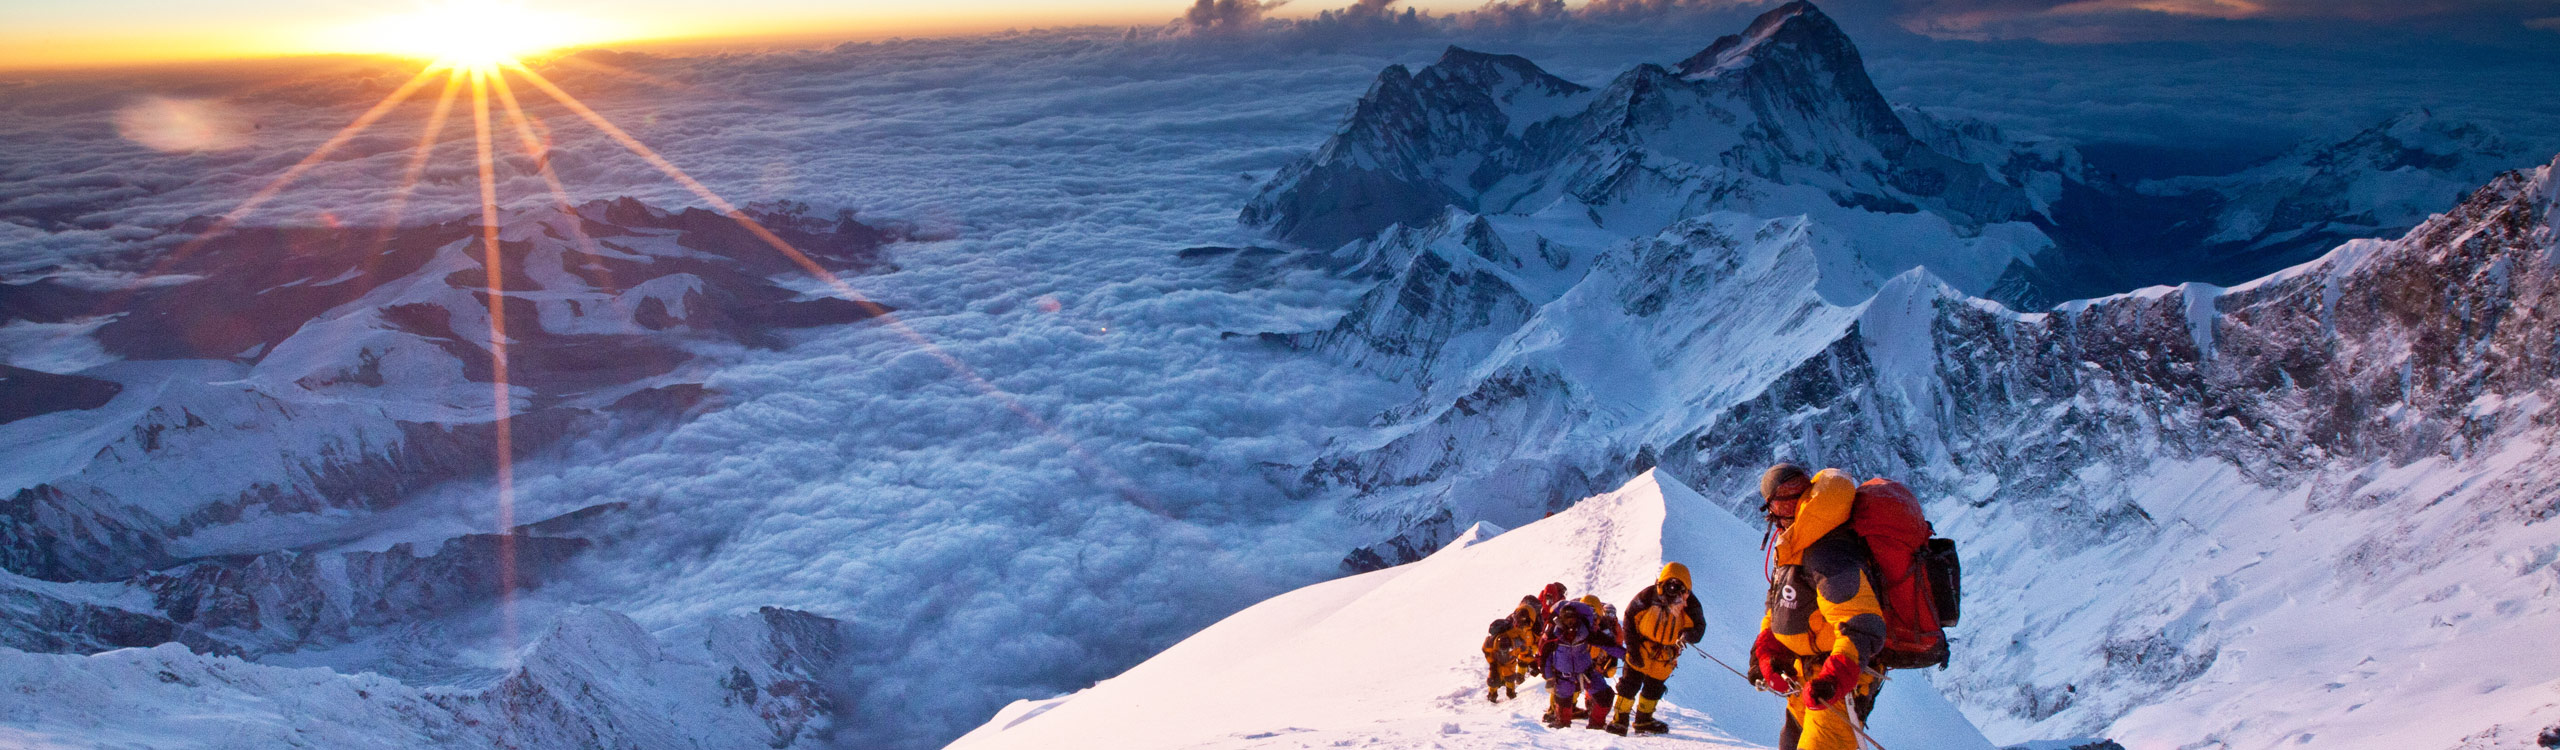 mount everest the summit to the gods Climbing mount everest check out this short video that shows a group of climbers making the final ascent to the summit of mt everest standing at an incredible 8,848 meters (29,029 ft) above sea level, mt everest is the highest mountain on earth.